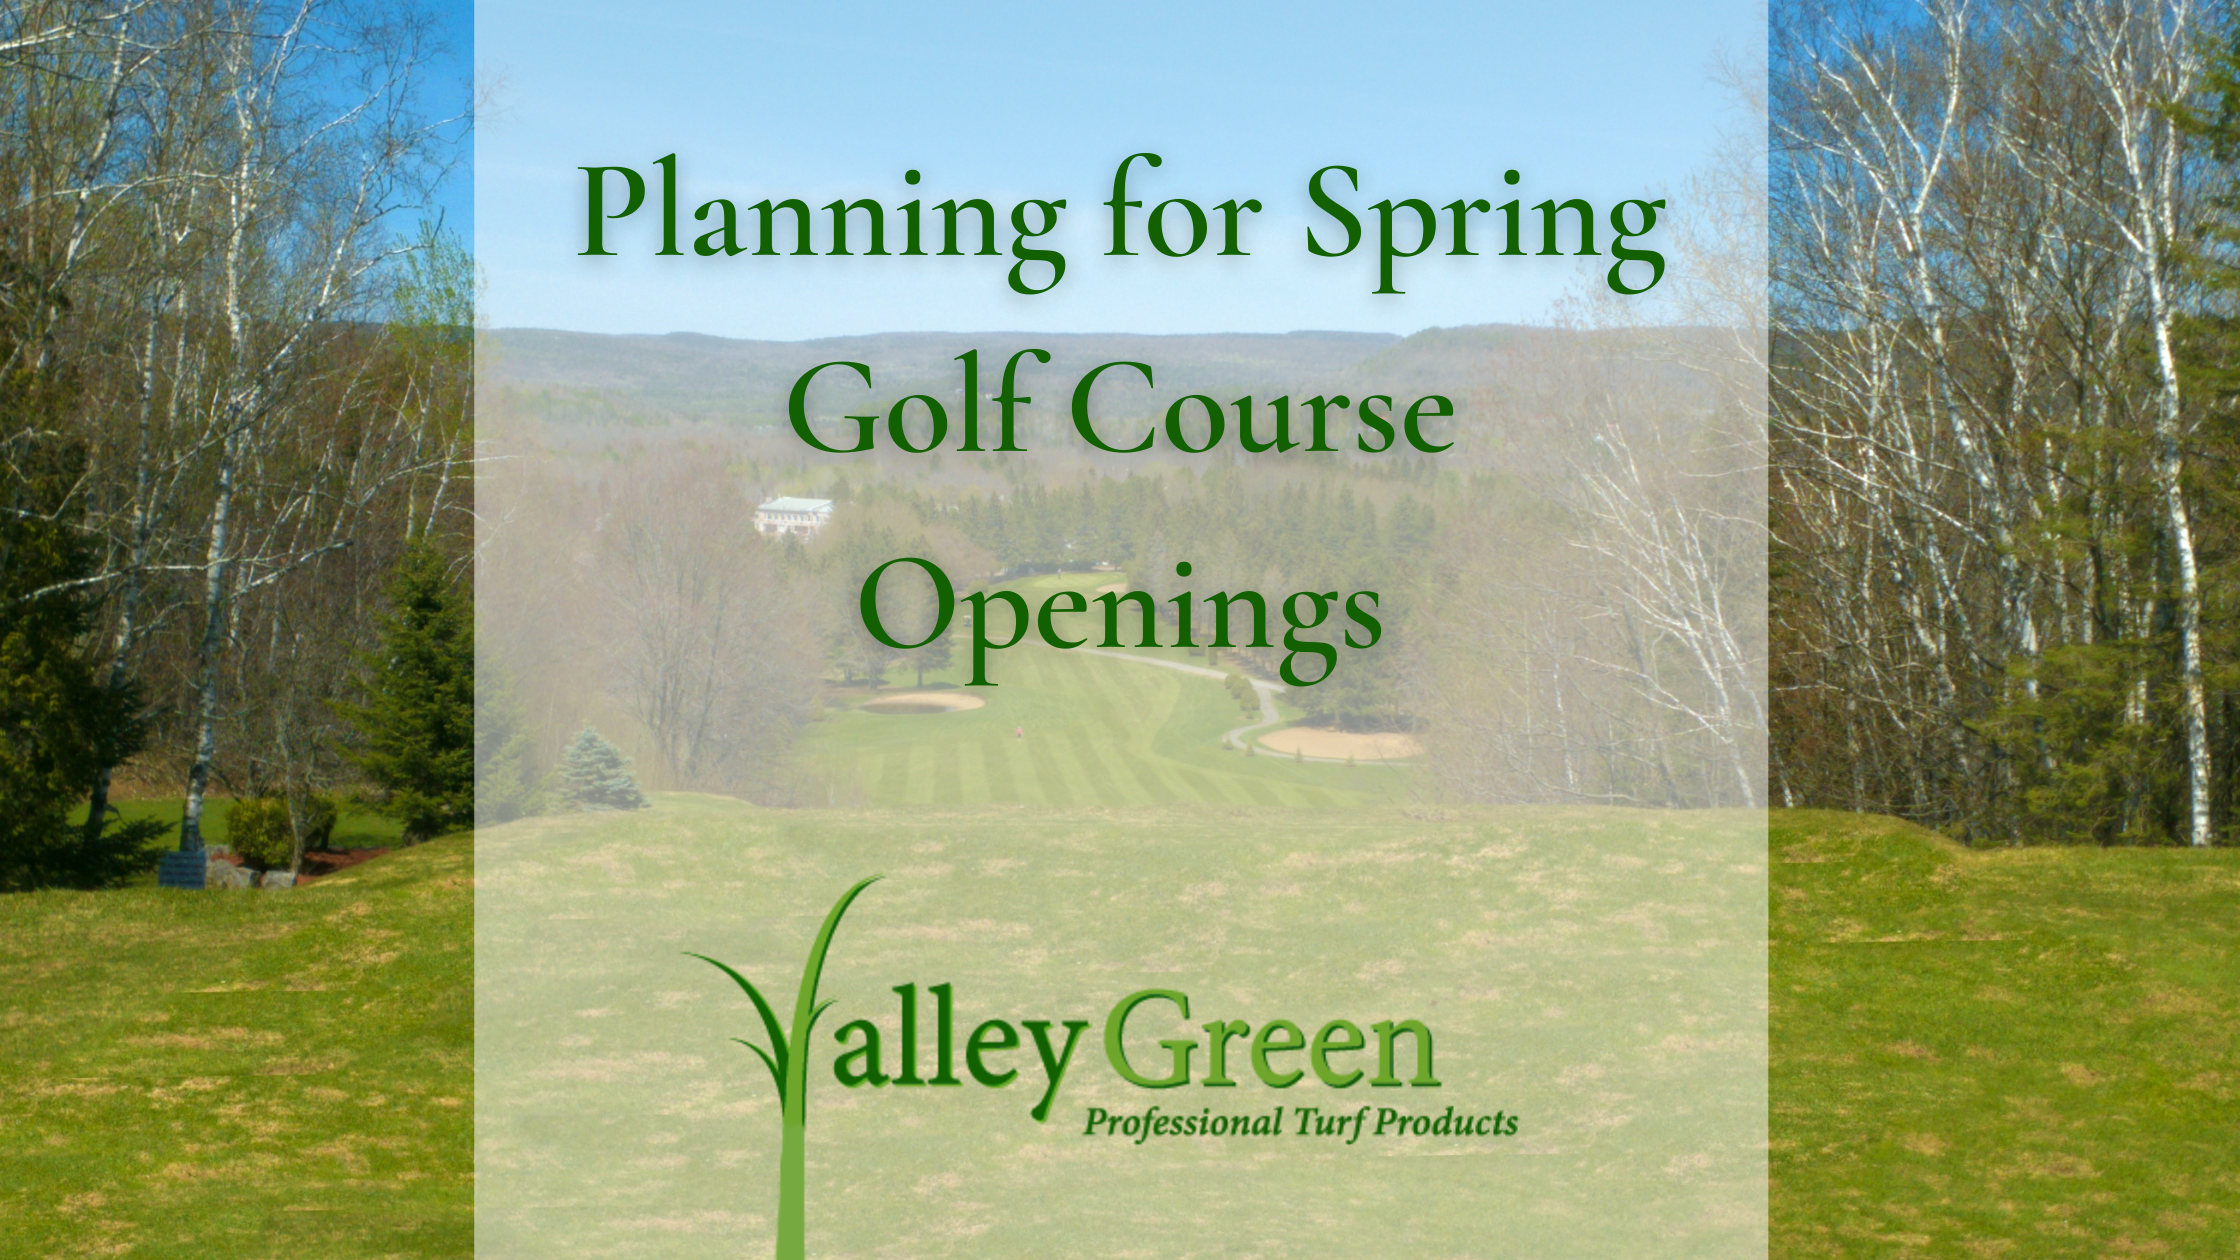 Planning for Spring Golf Course Openings